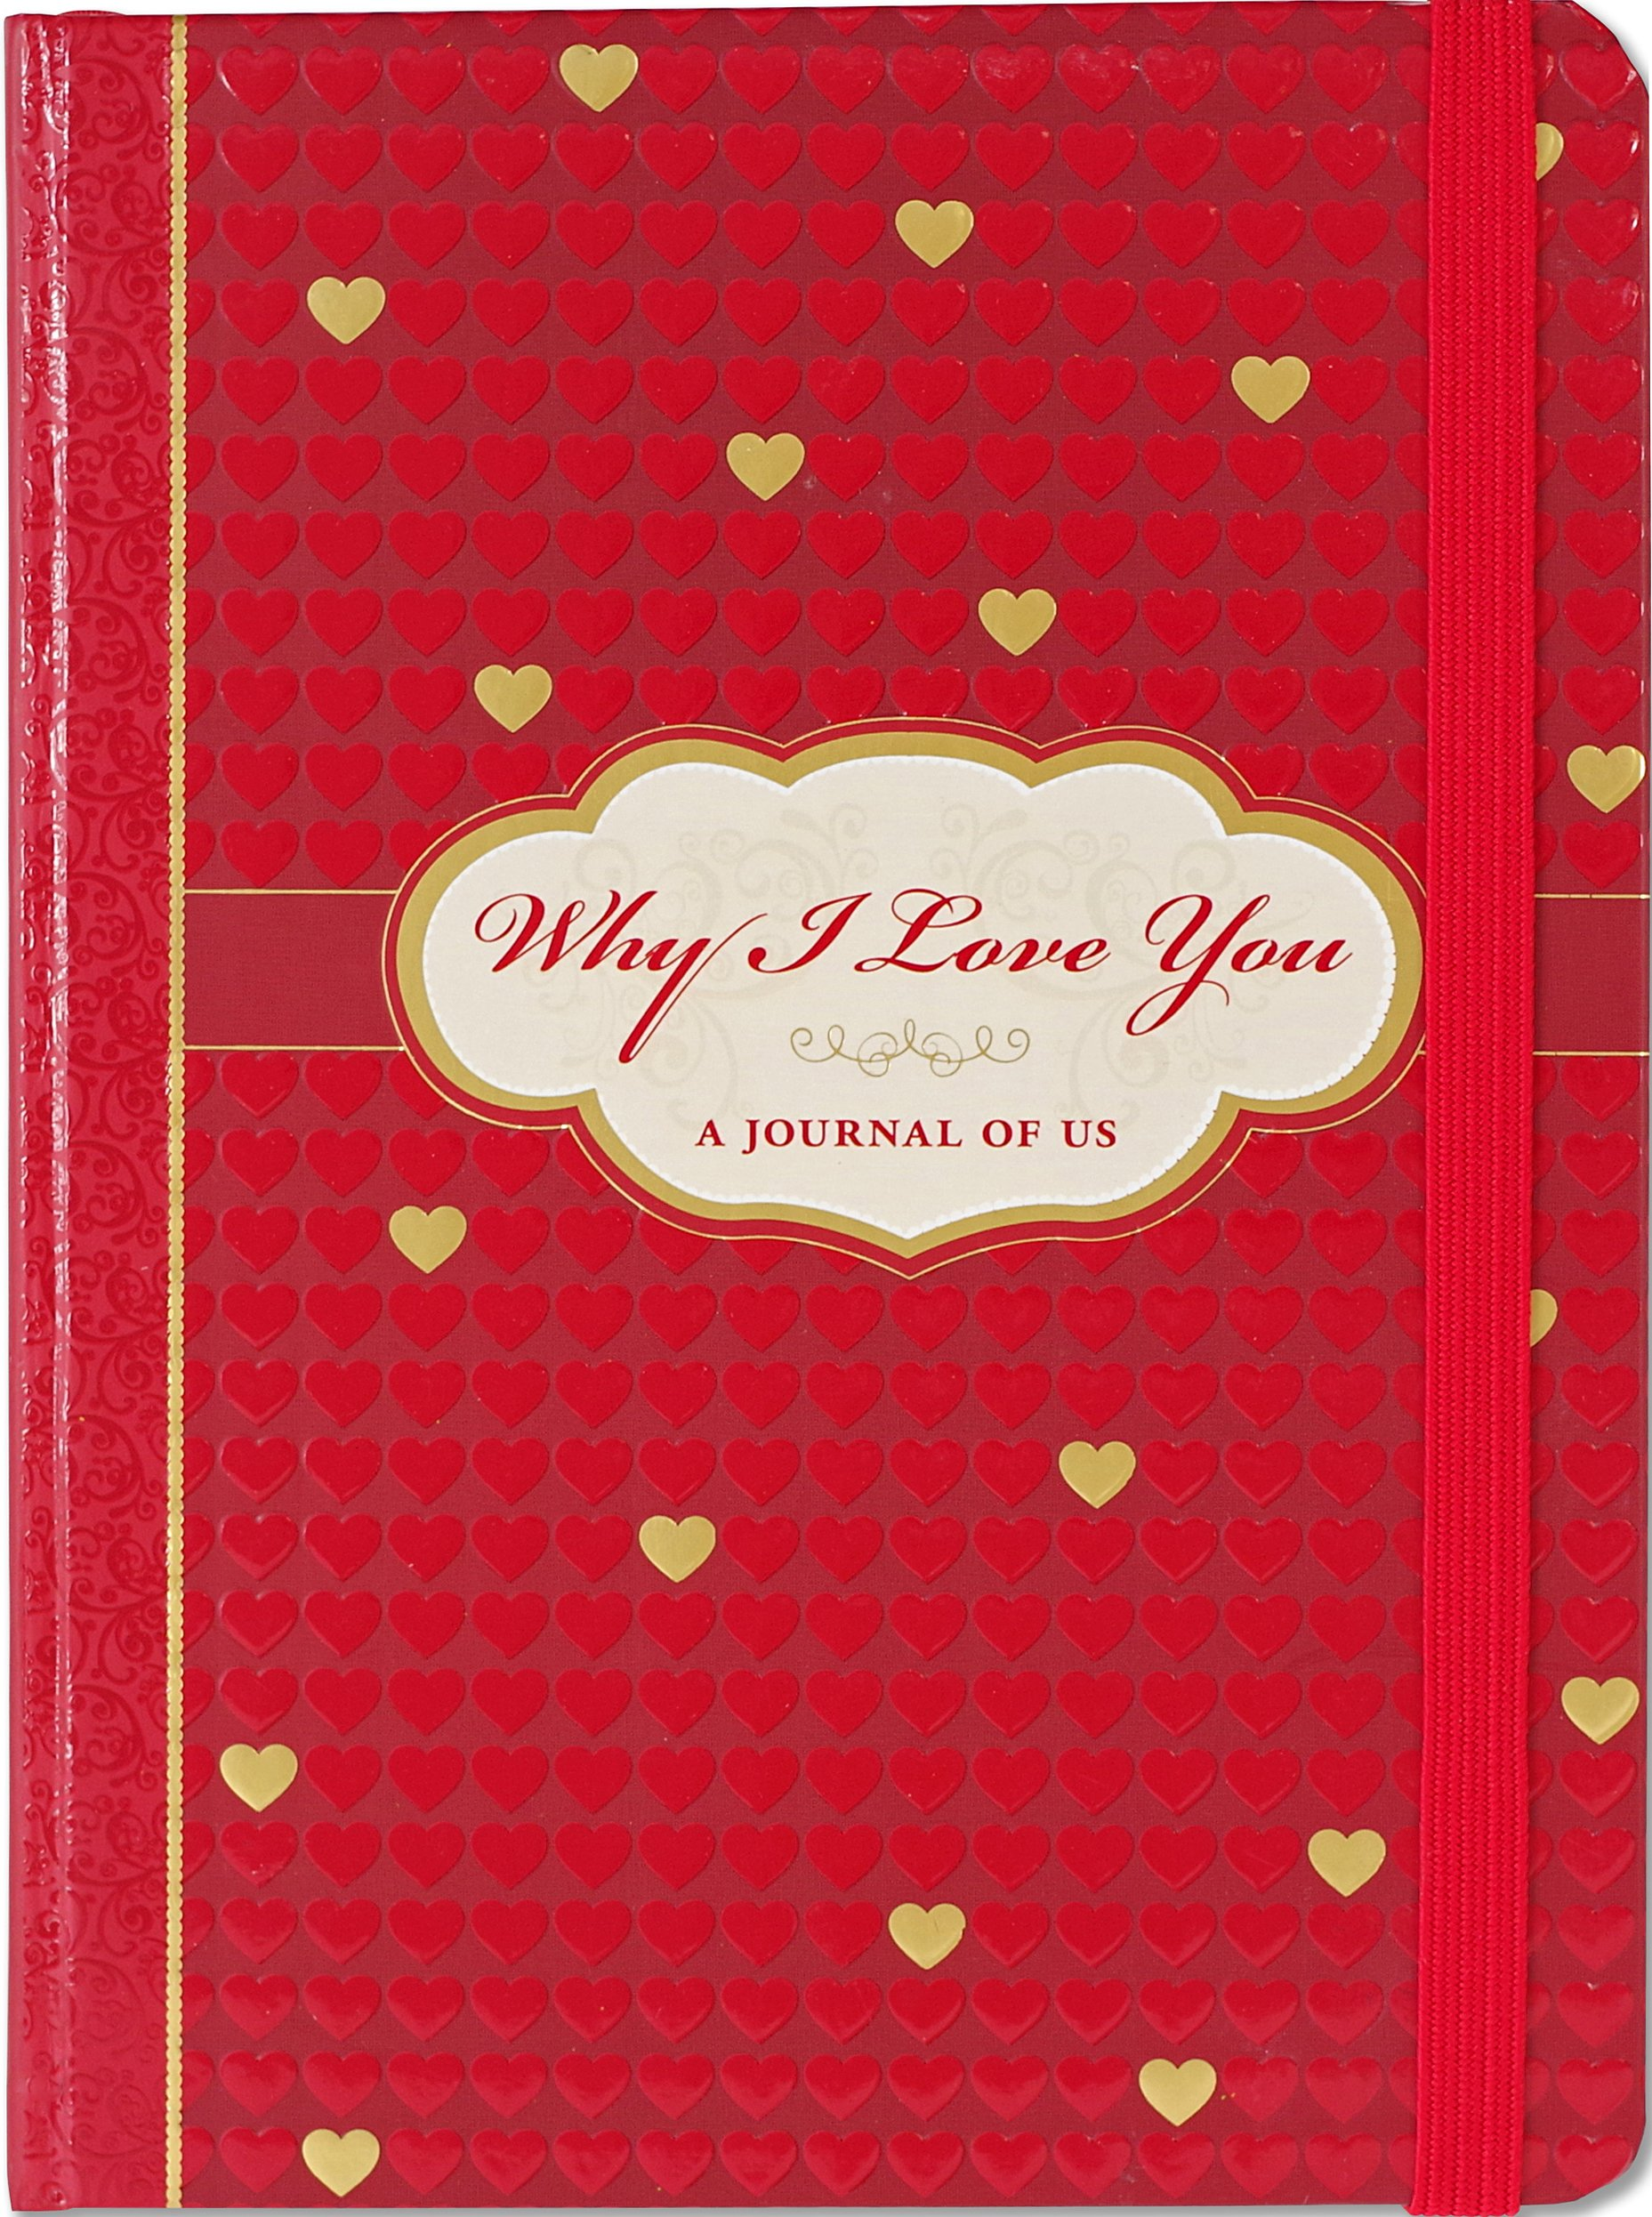 Why Love You Journal About product image